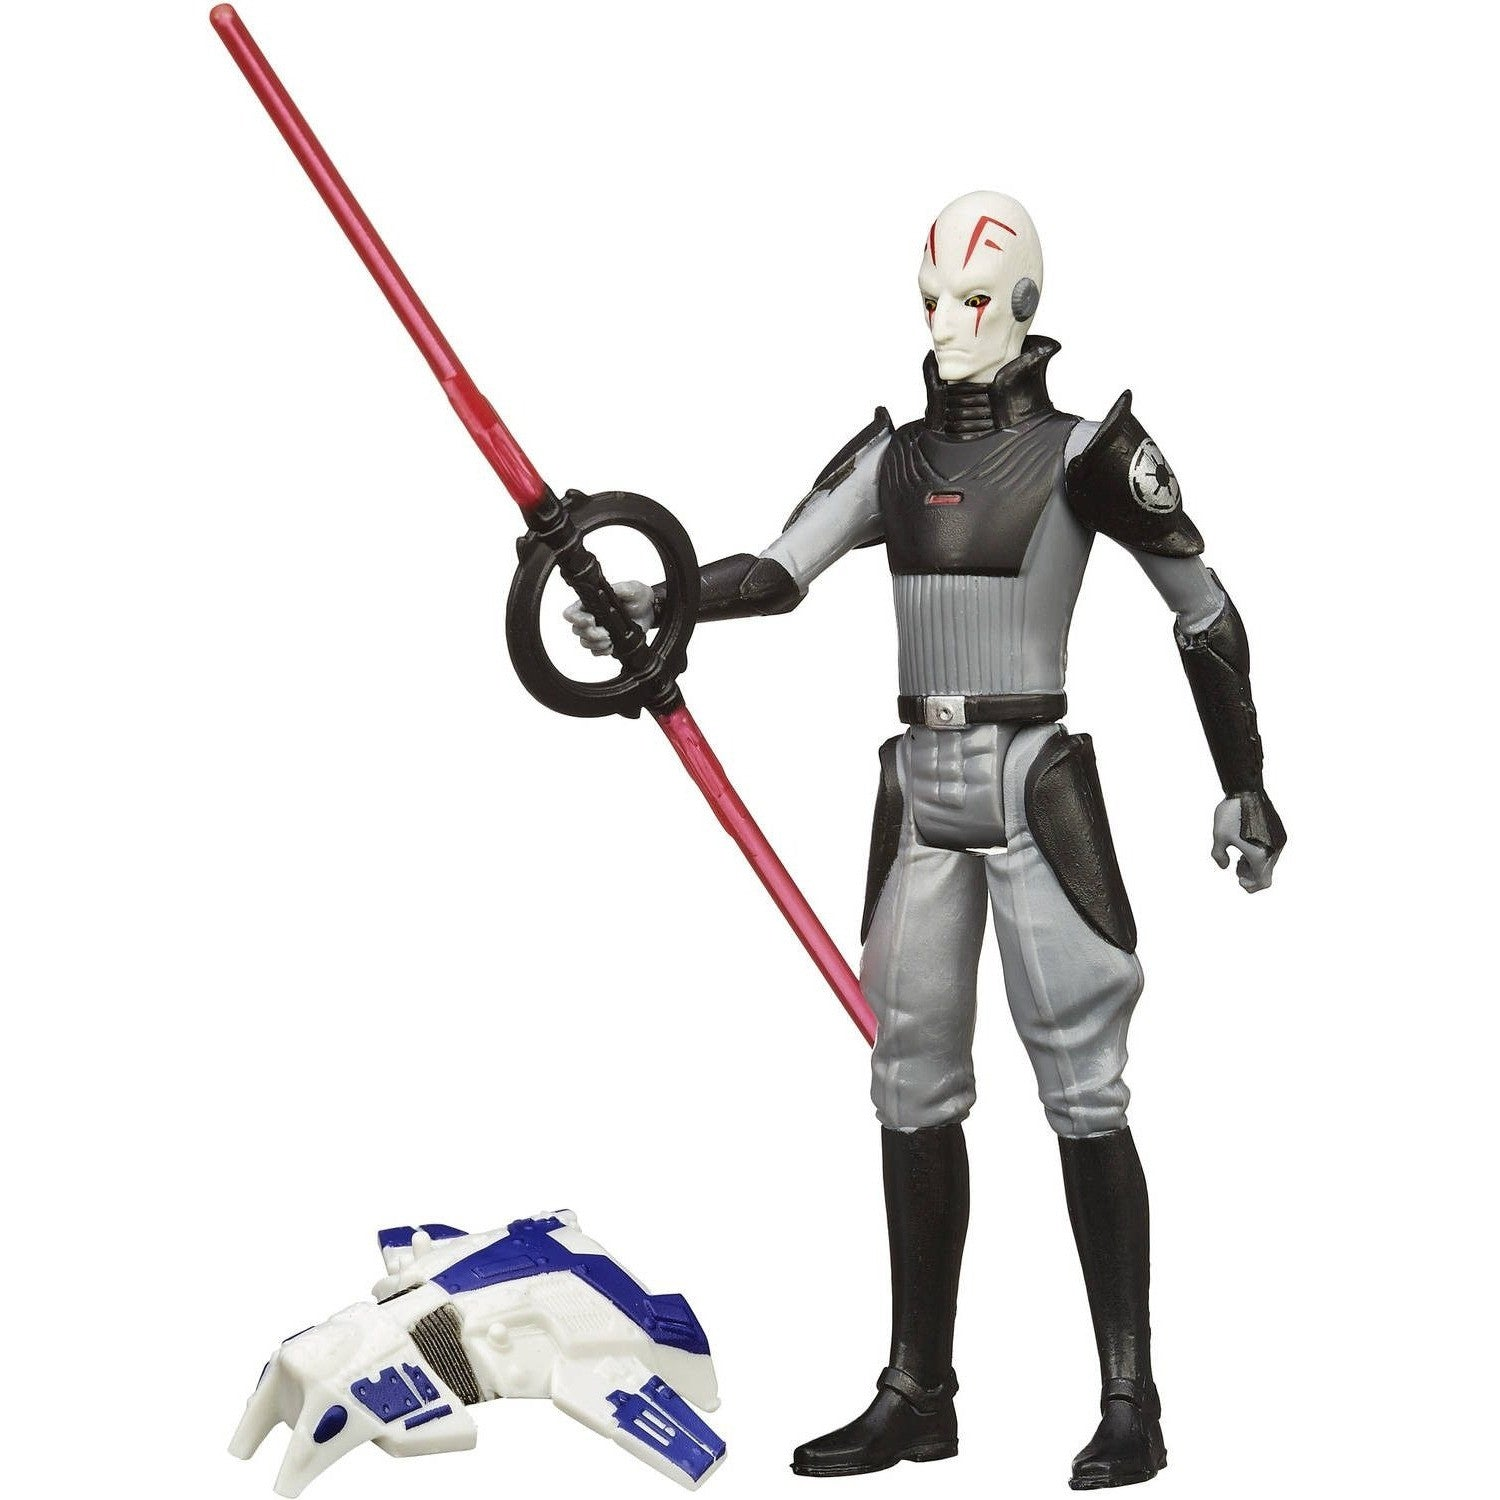 Star Wars Inquisitor Action Figure Uncanny!